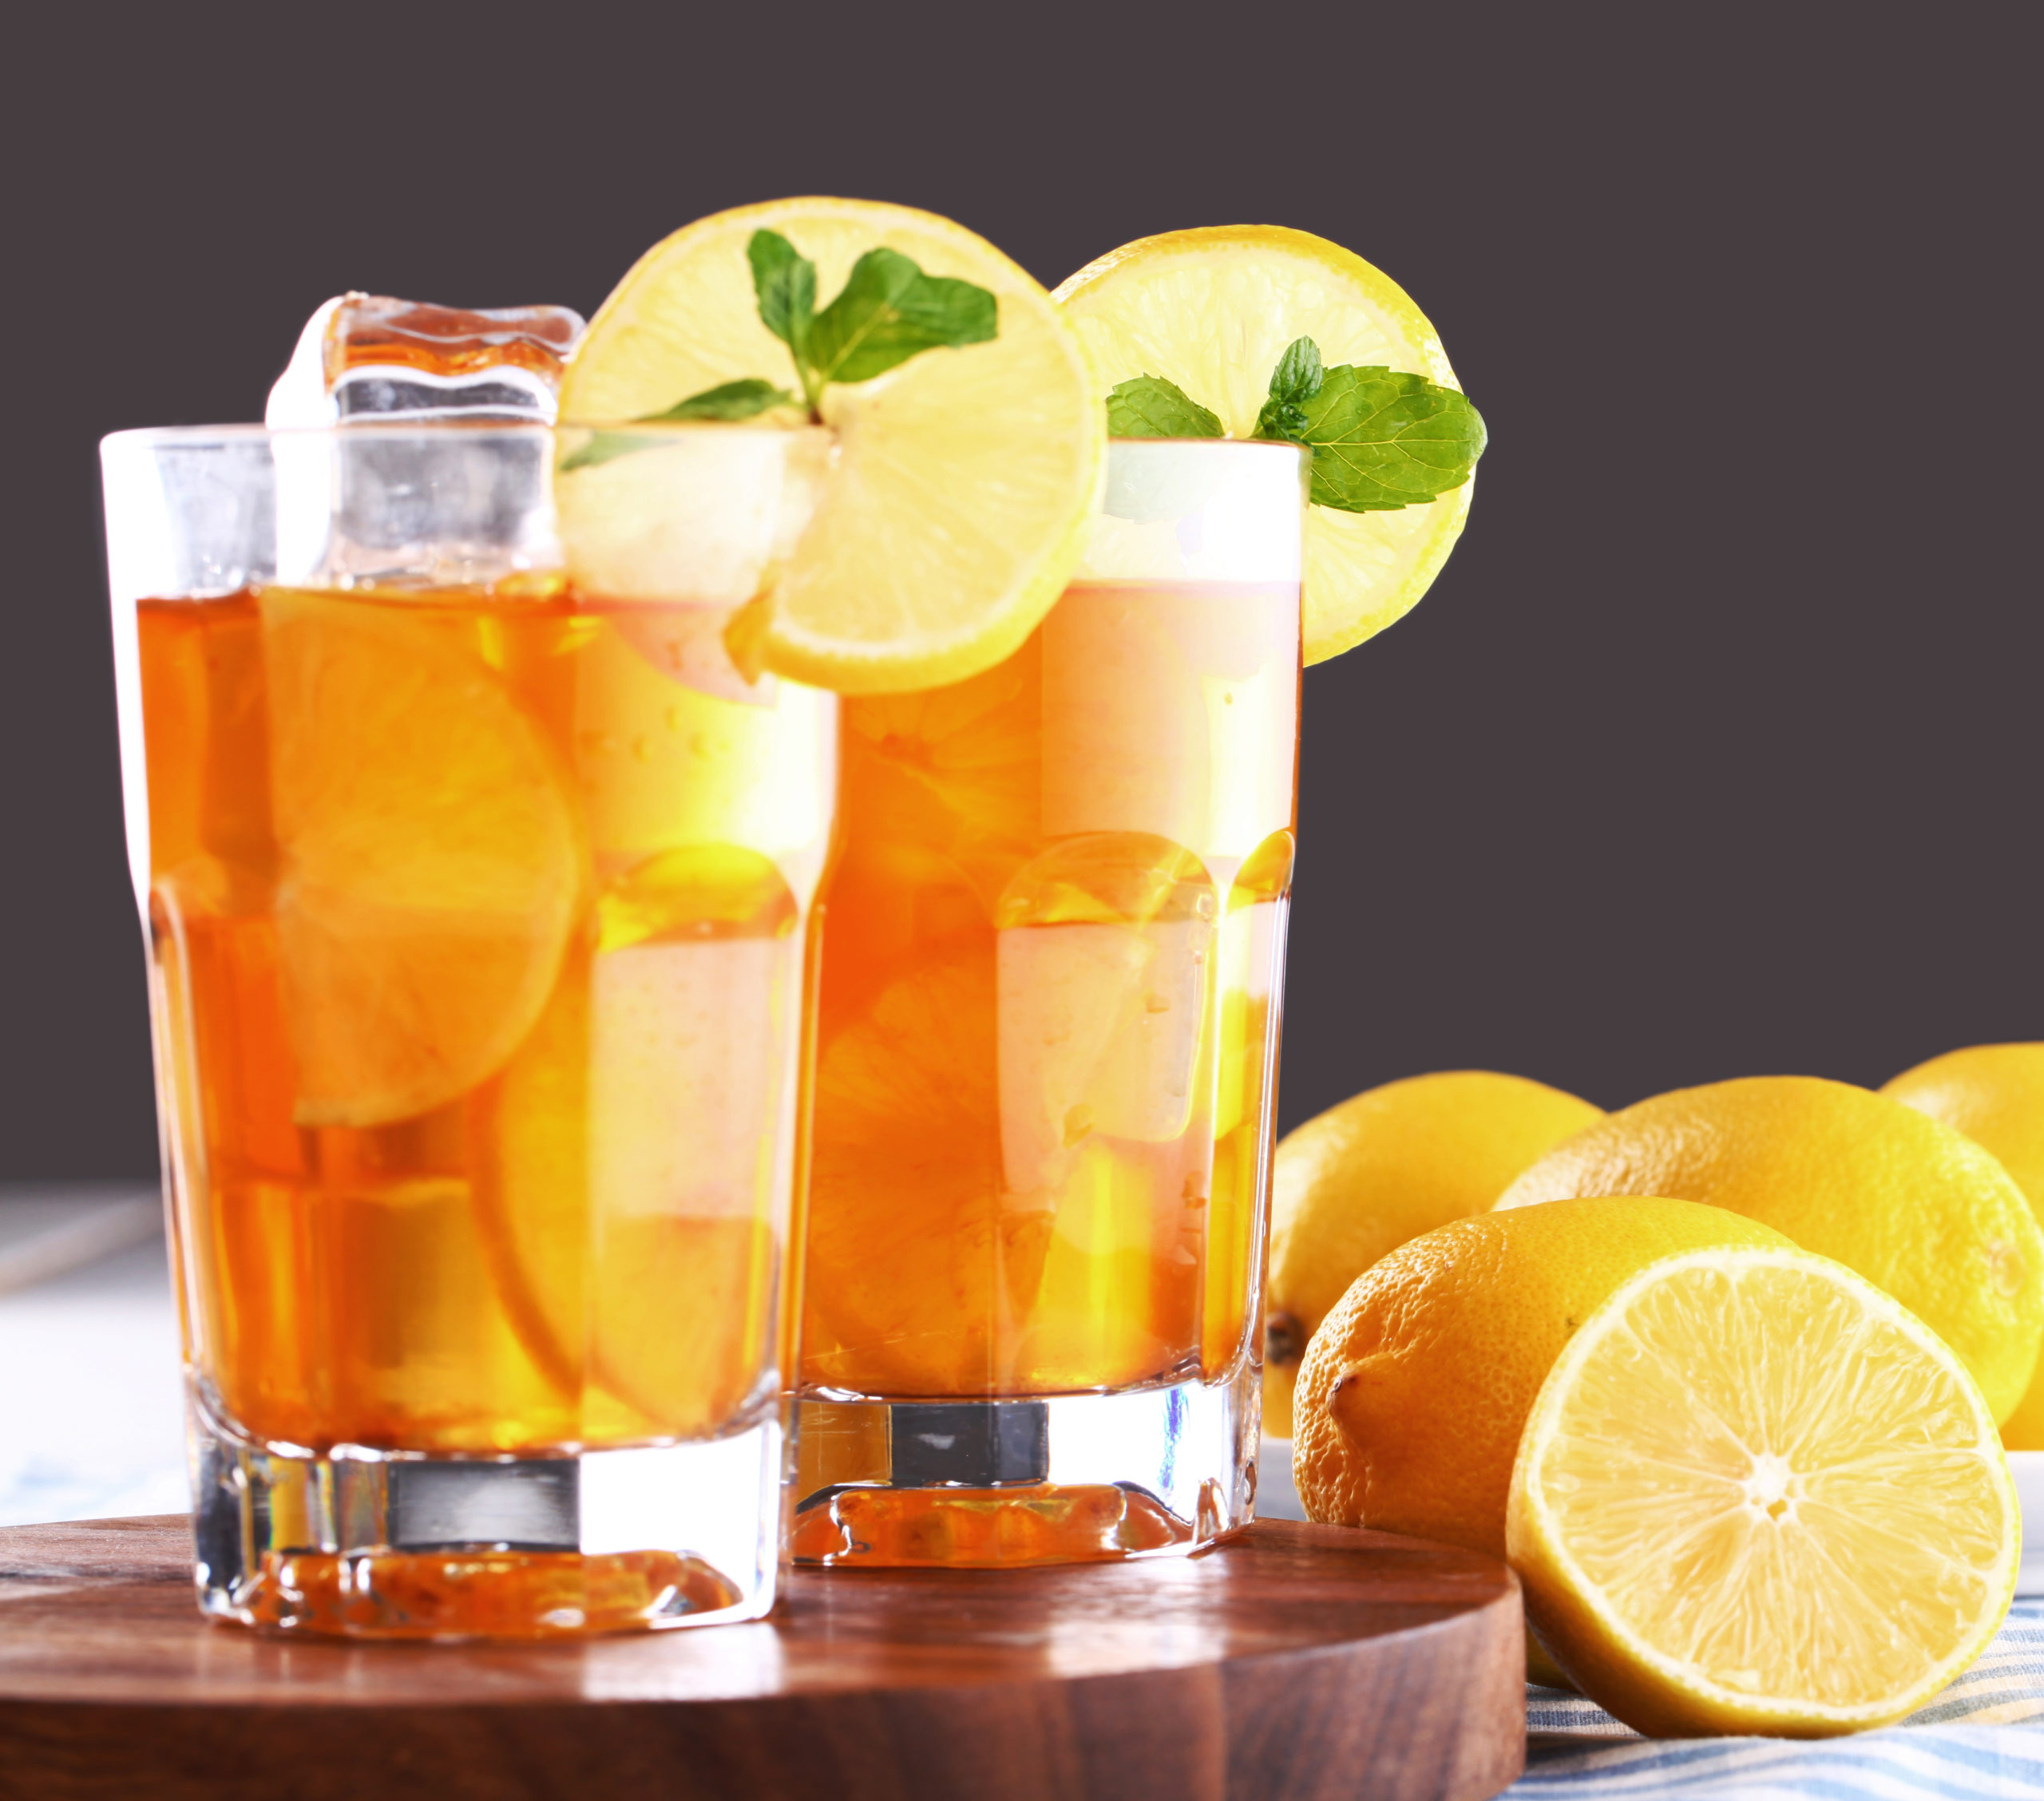 Best Homemade Flavored Iced Tea Recipes Feature Image